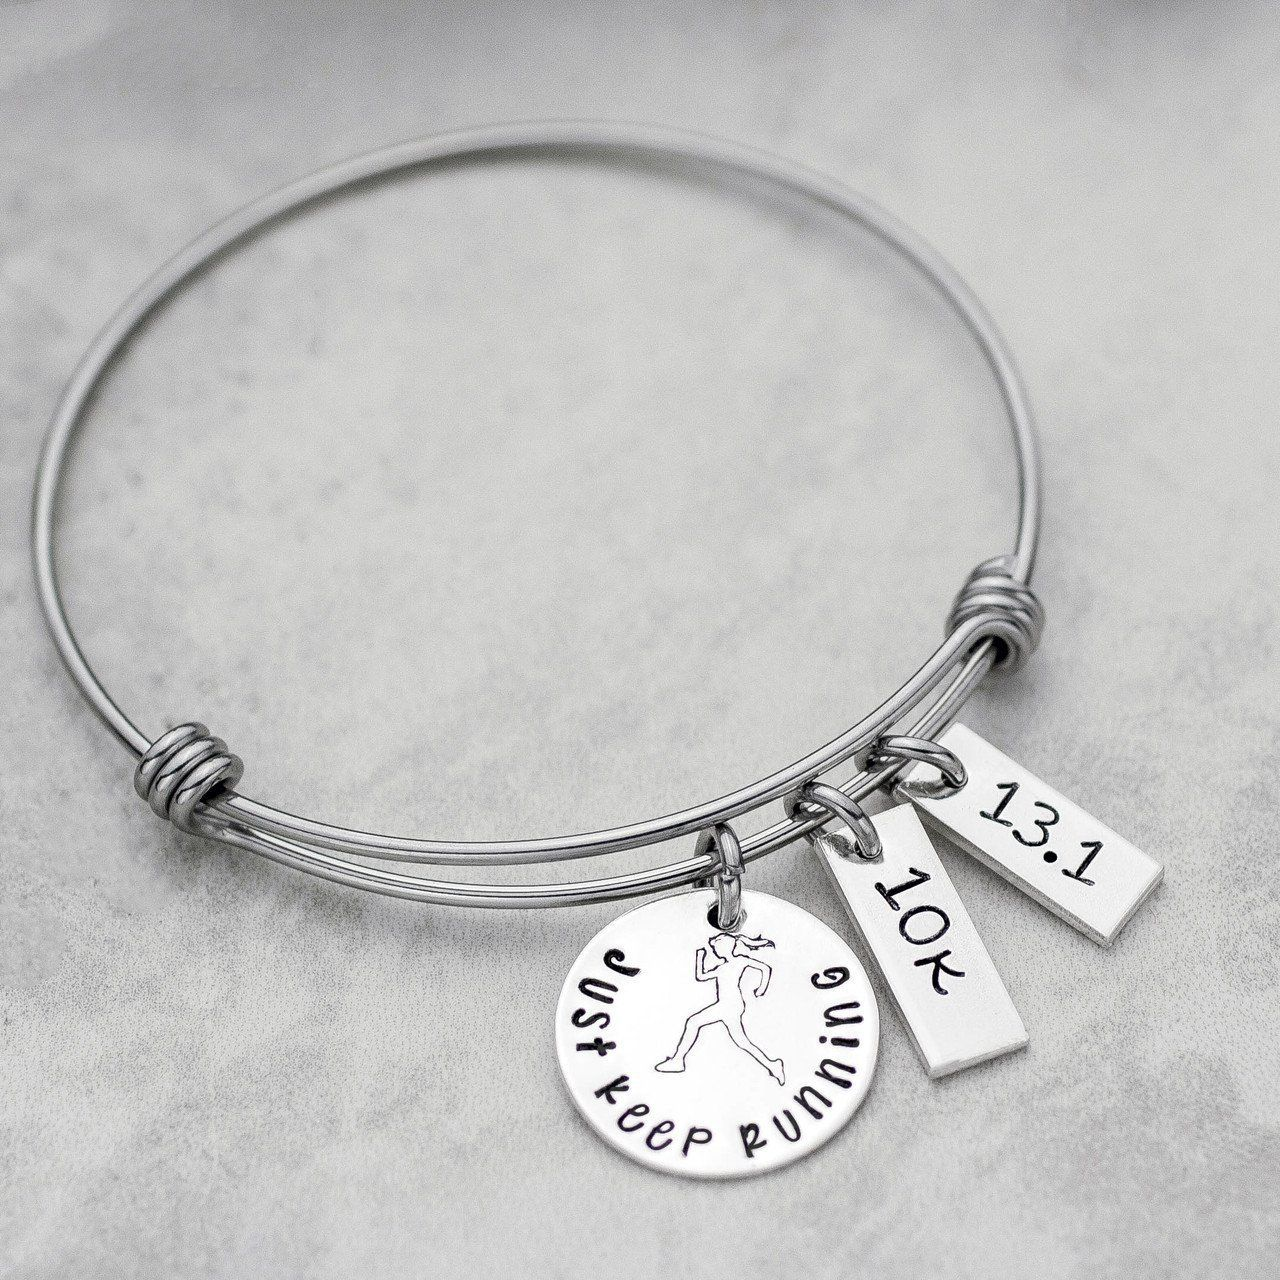 600c2f9217a66d Just Keep Running Personalized Bangle Charm Bracelet // Jessie Girl #Jewelry  Bangle Bracelets With